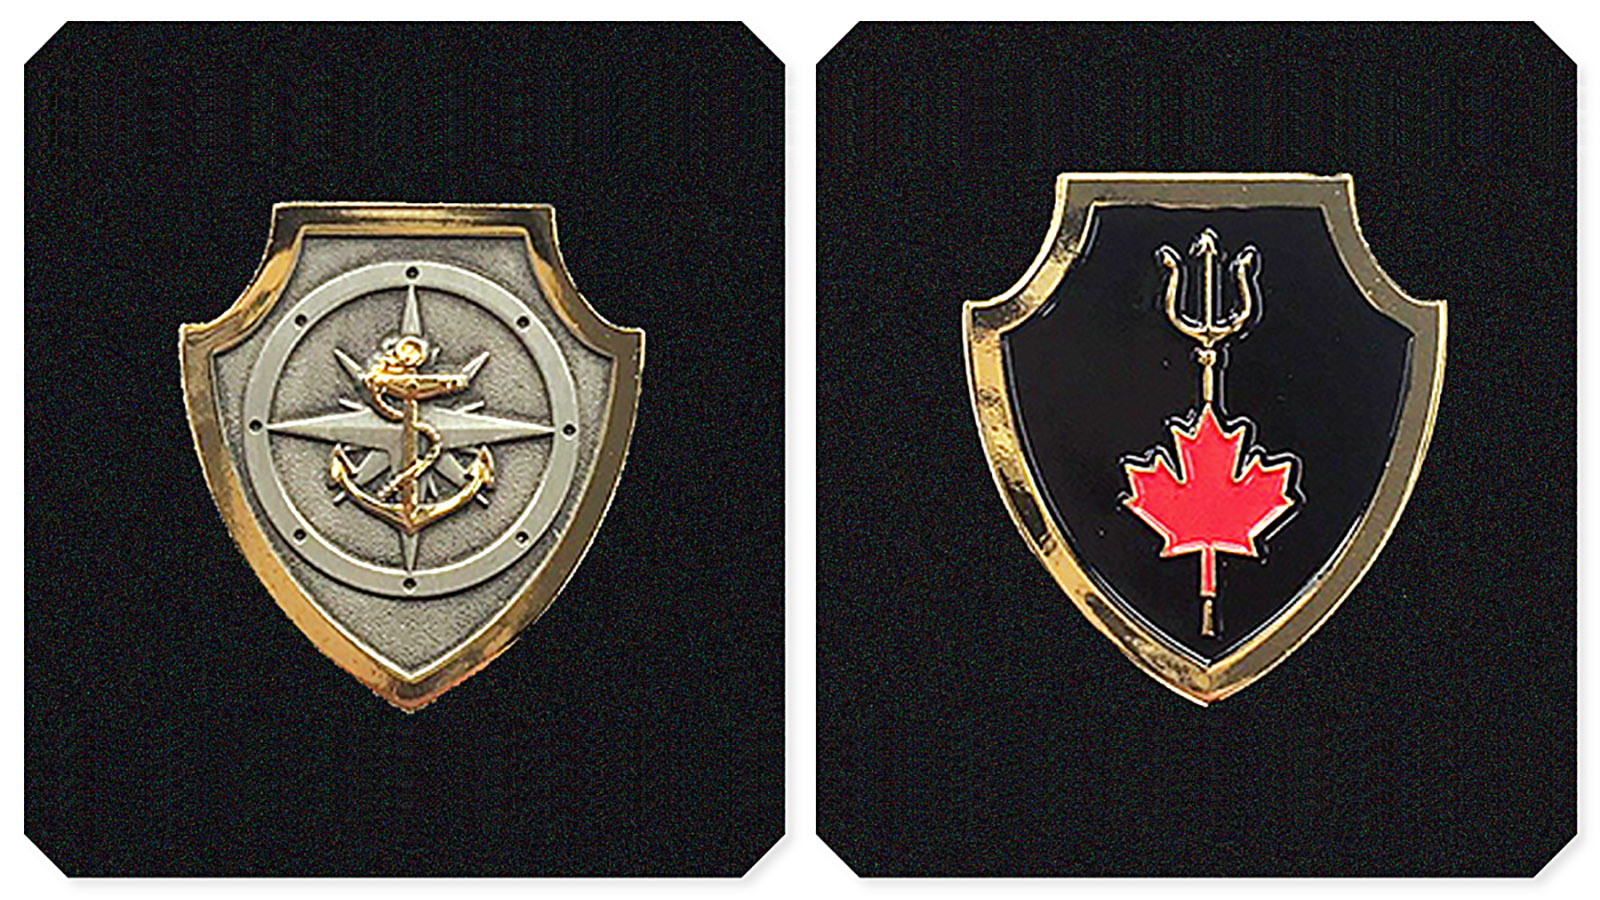 RCN Naval Boarding Party badges